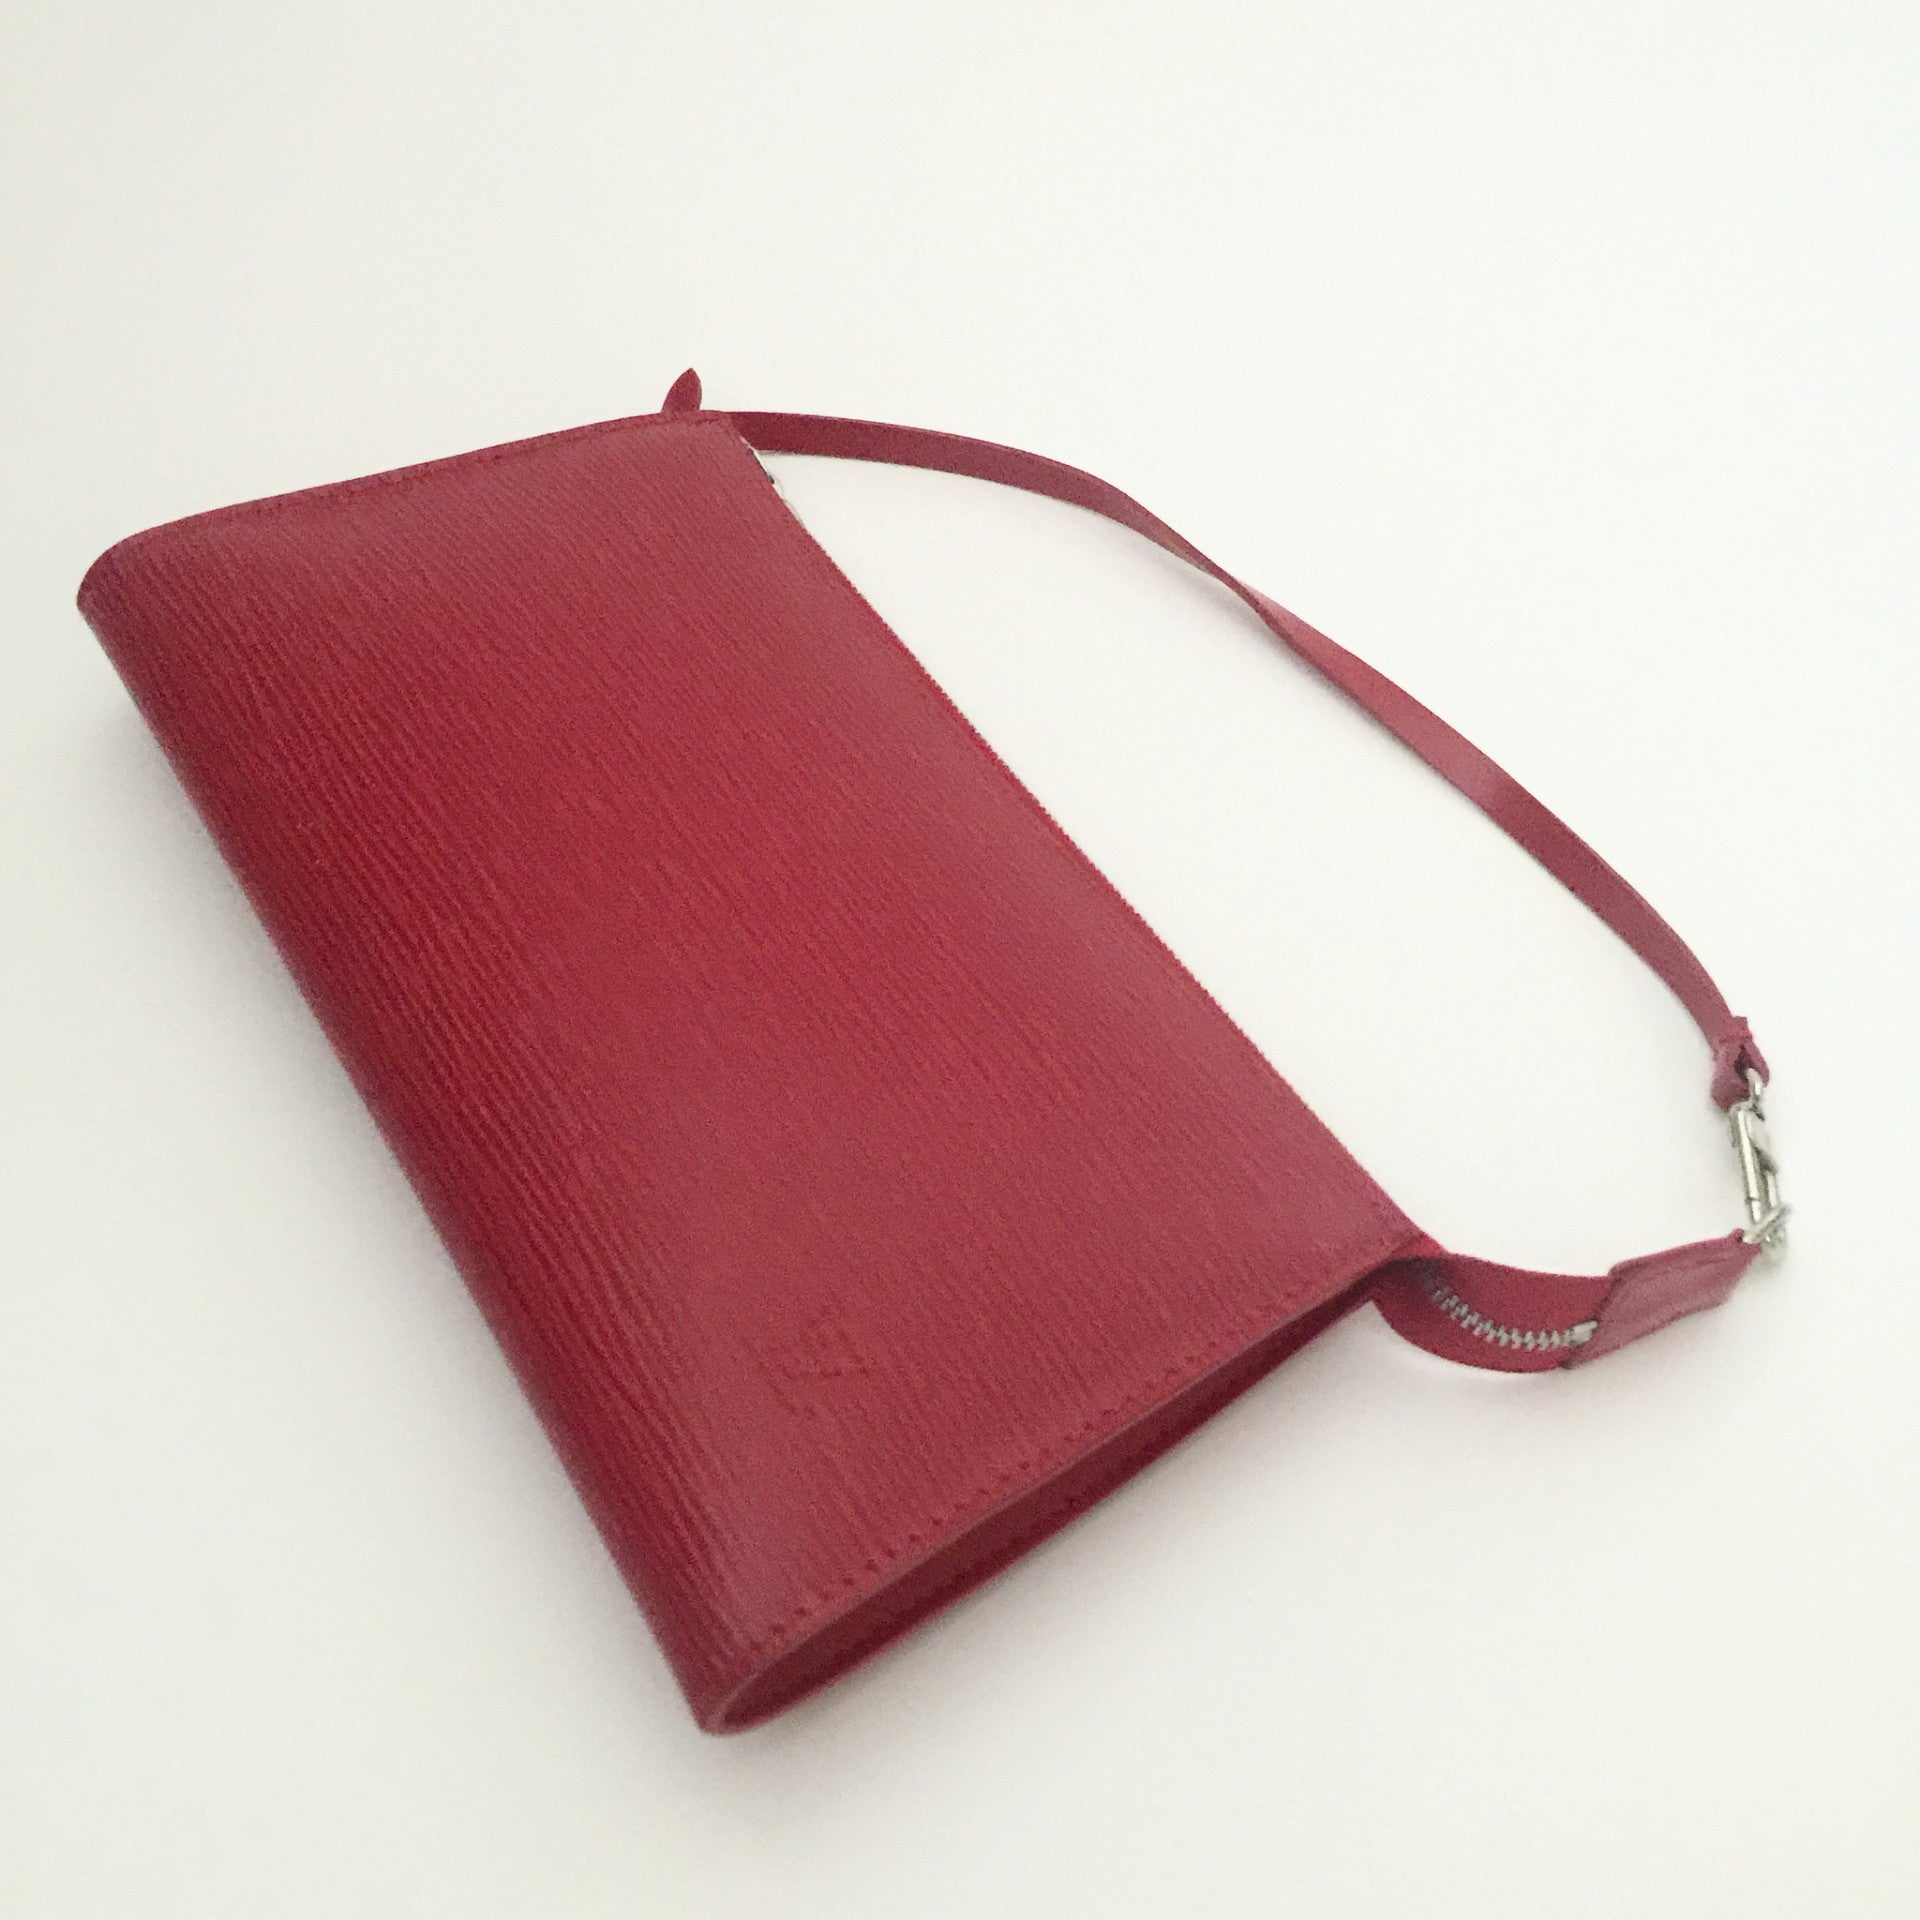 Authentic LOUIS VUITTON Red Epi Small Pochette